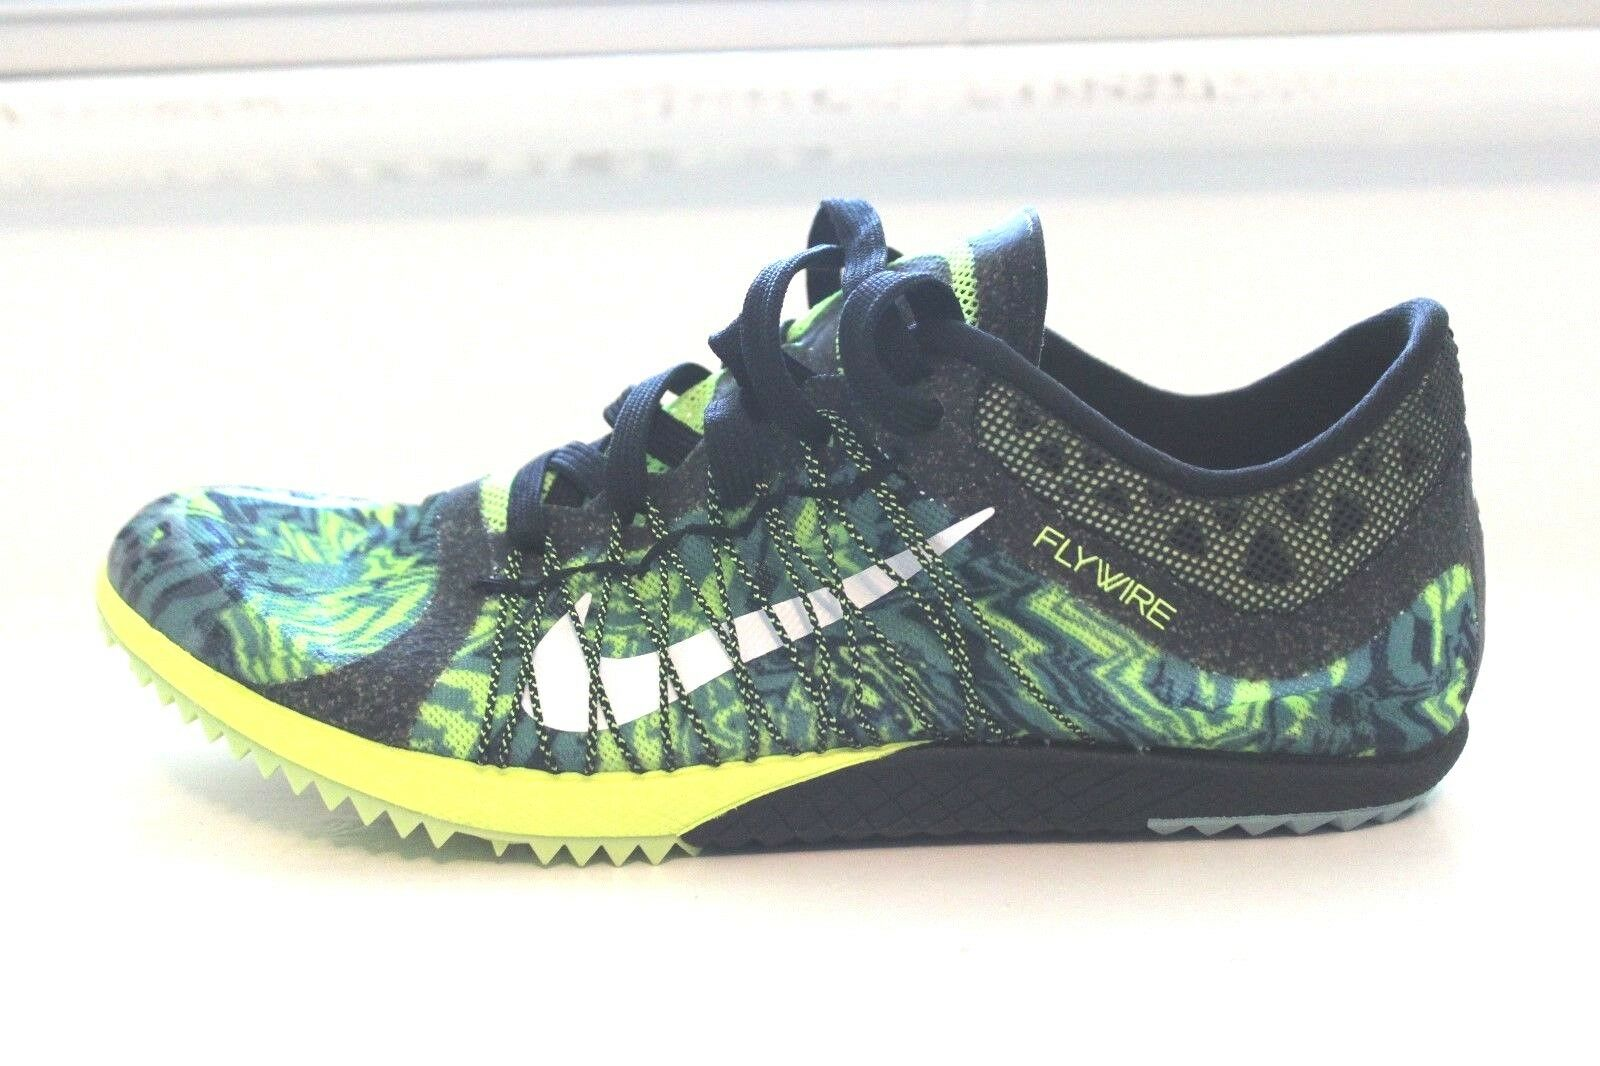 Nike sieg xc 3 cross country - spikes männer frauen xc - country print msrp 120 neue 19f7ff